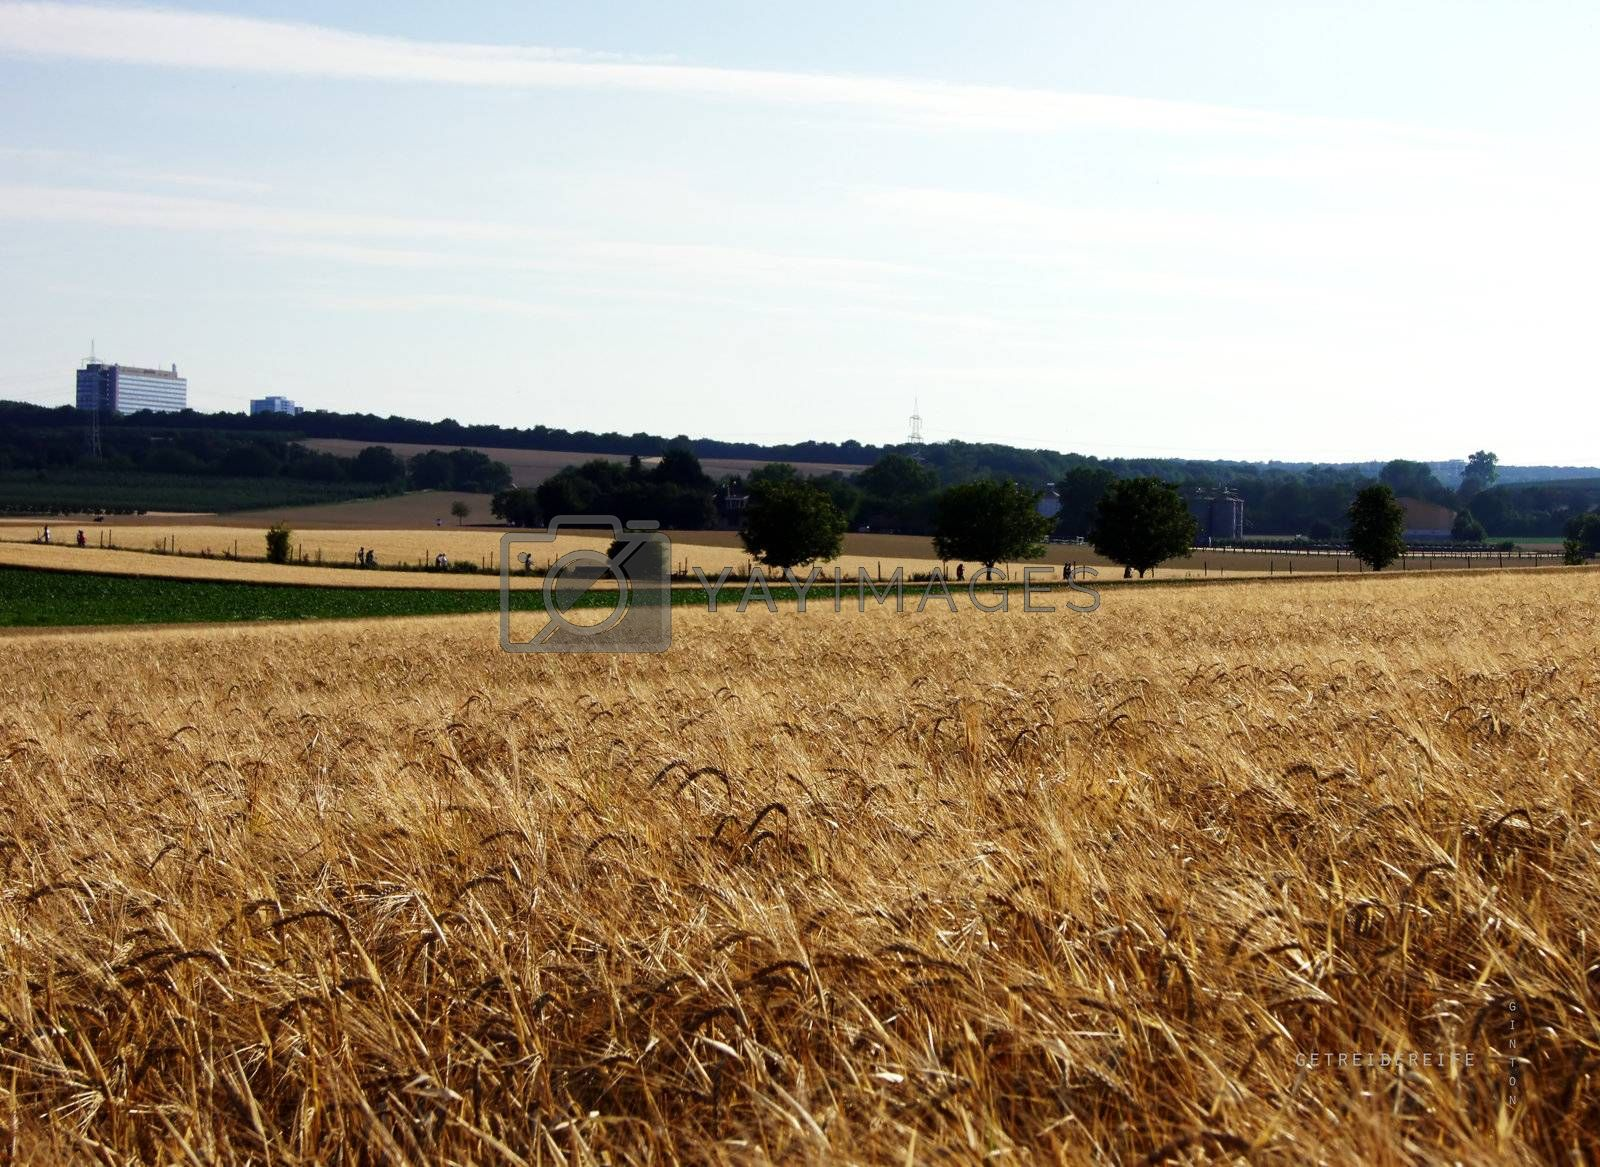 Inclusion of a hilly landscape with fields of grain in the foreground, behind whith trails.